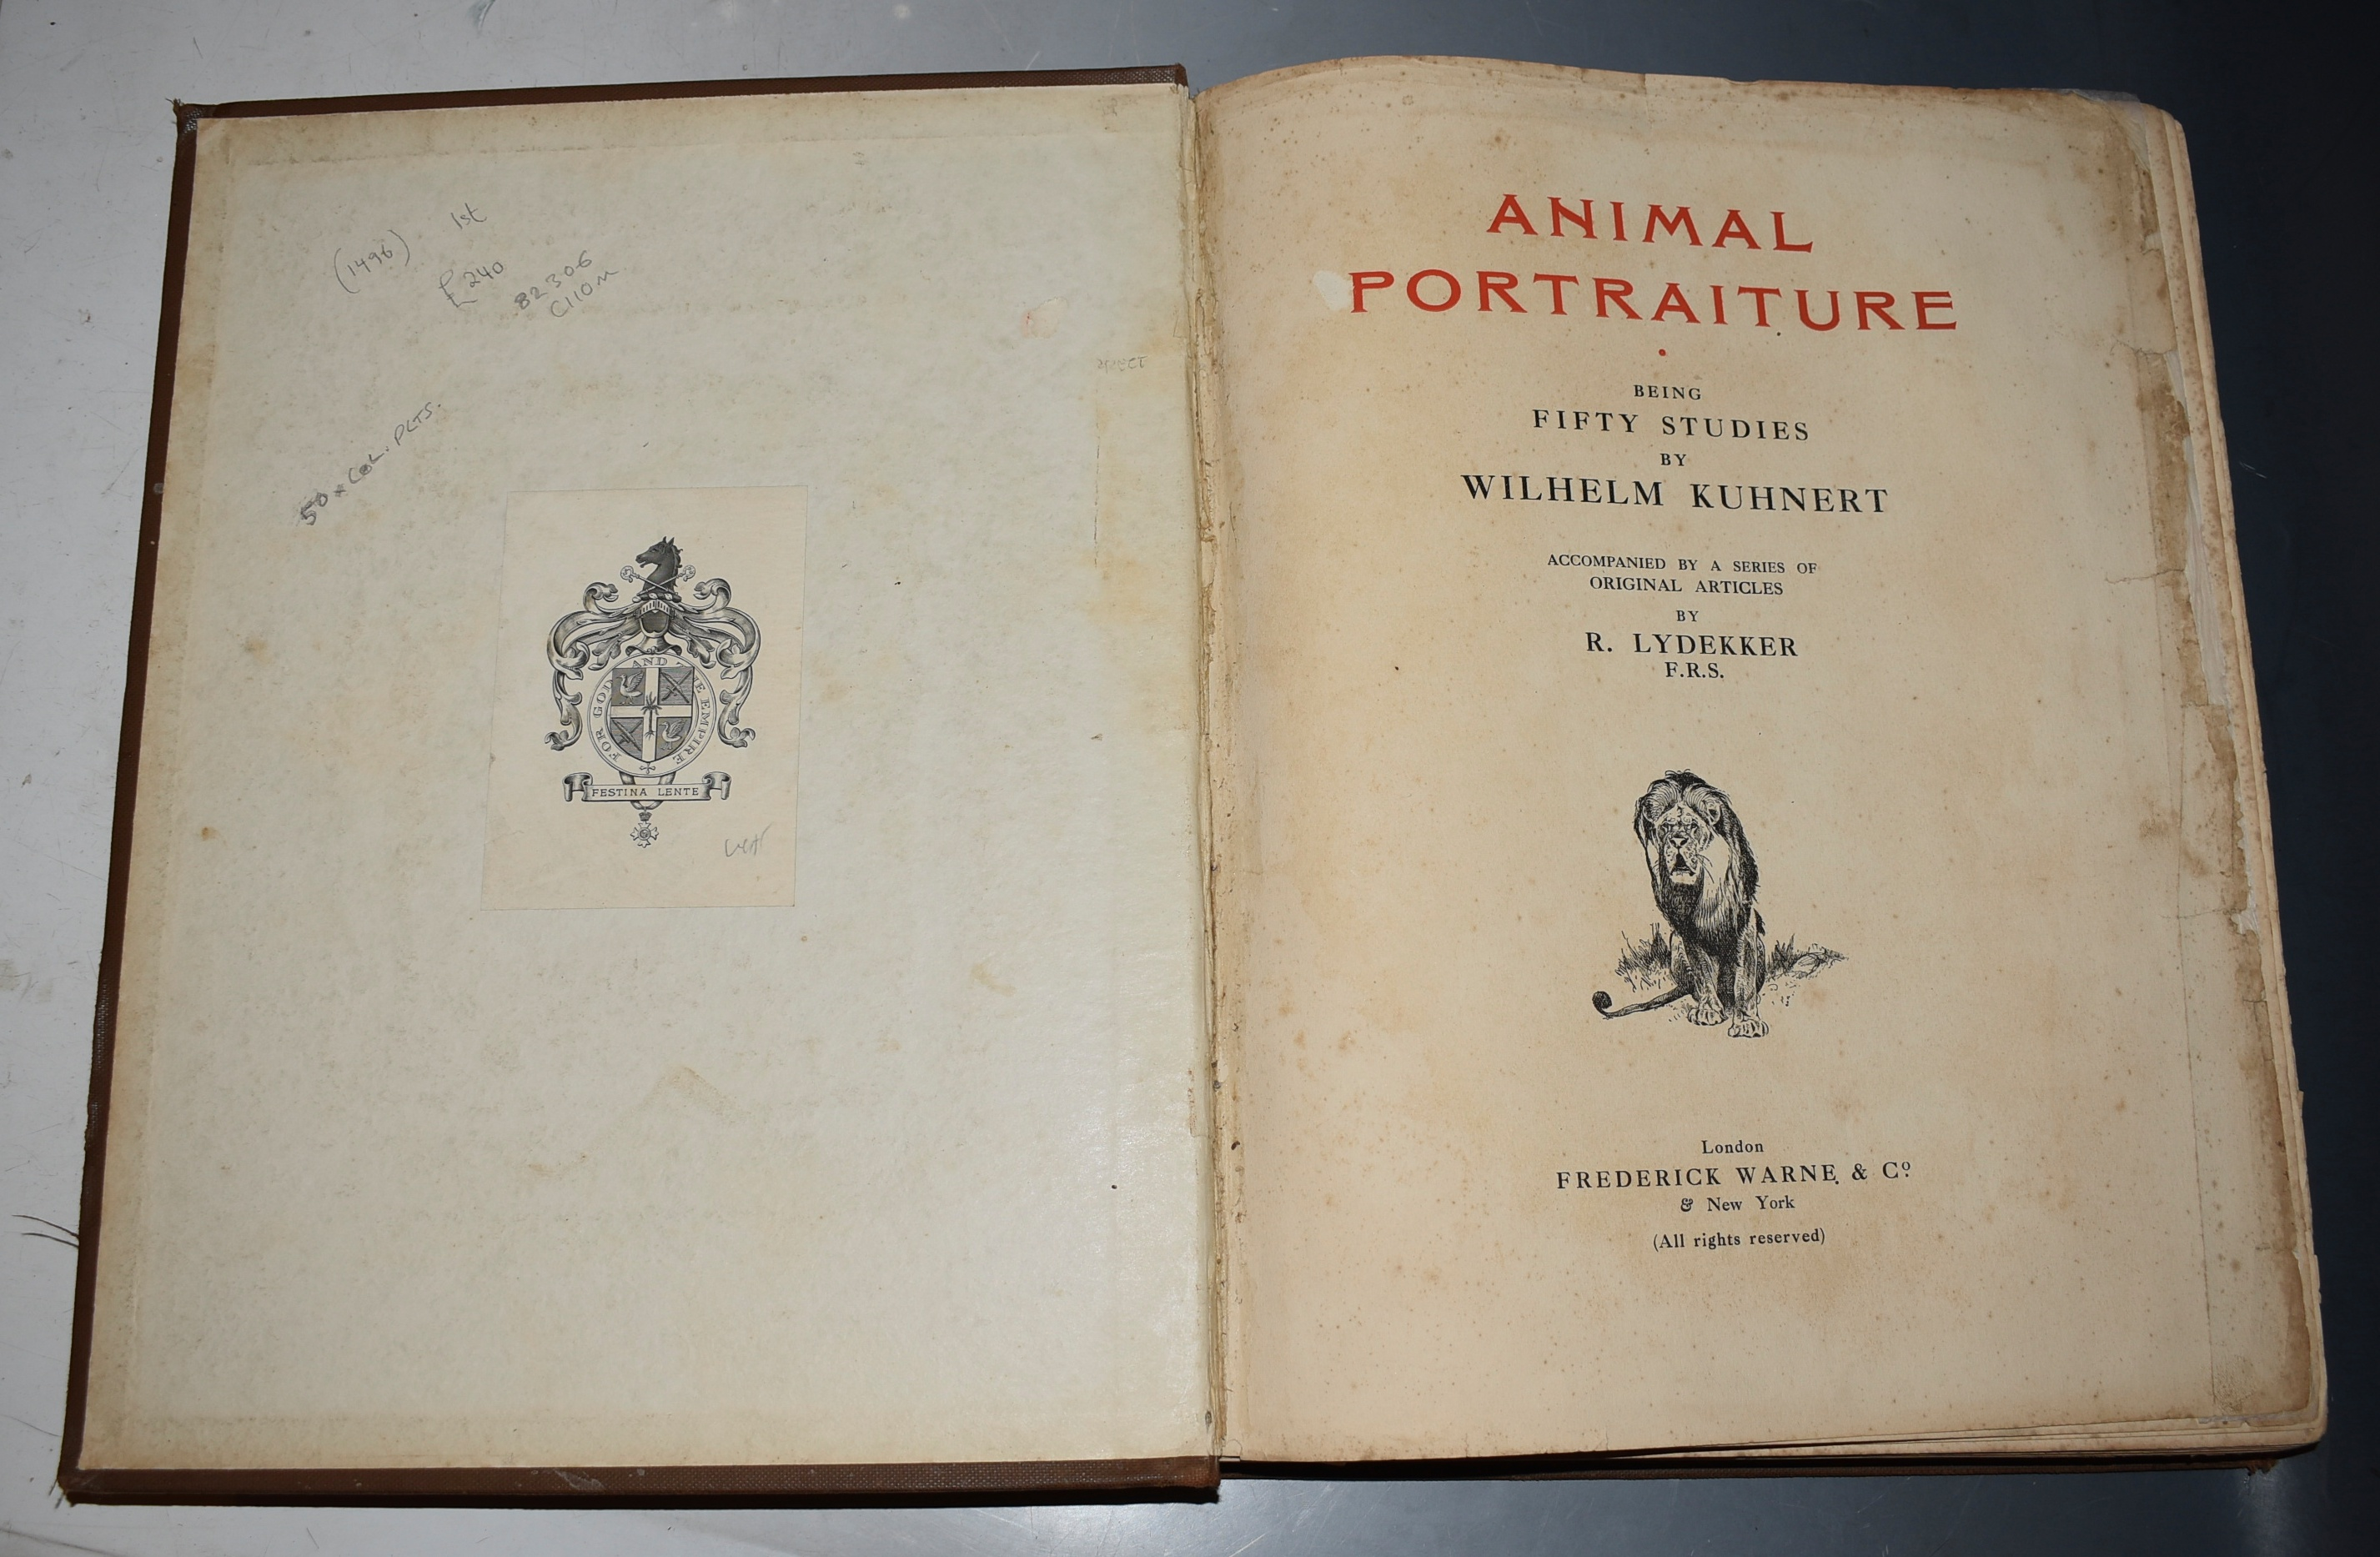 Image for Animal Portraiture. Being Fifty Studies by Wilhelm Kuhnert. Accompanied by a series of original articles by R. LYDEKKER.